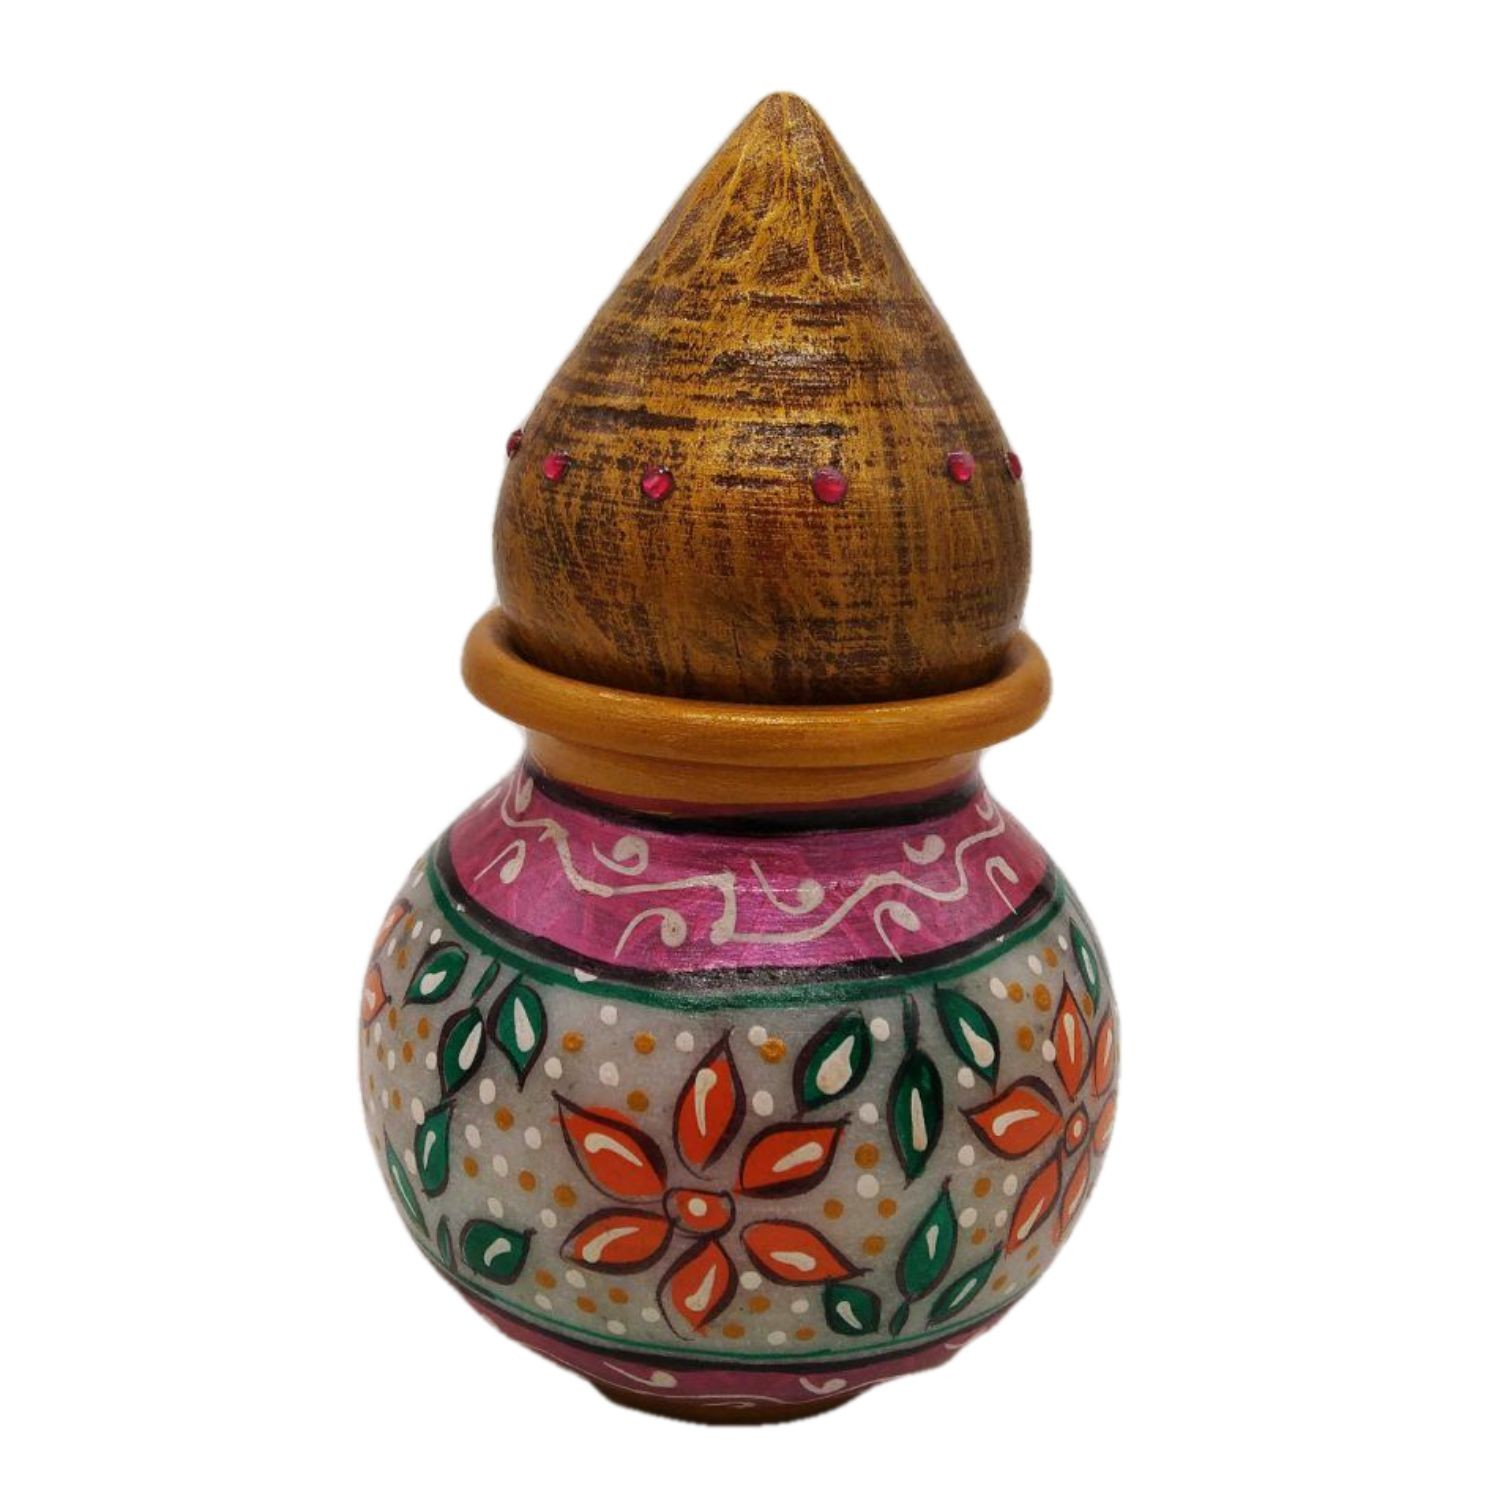 India Meets India Handicraft Marble Kalash with Nariyal Statue, Kalash with Nariyal Showpiece Home Décor, Best Gifting Made By Awarded Indian Artisan